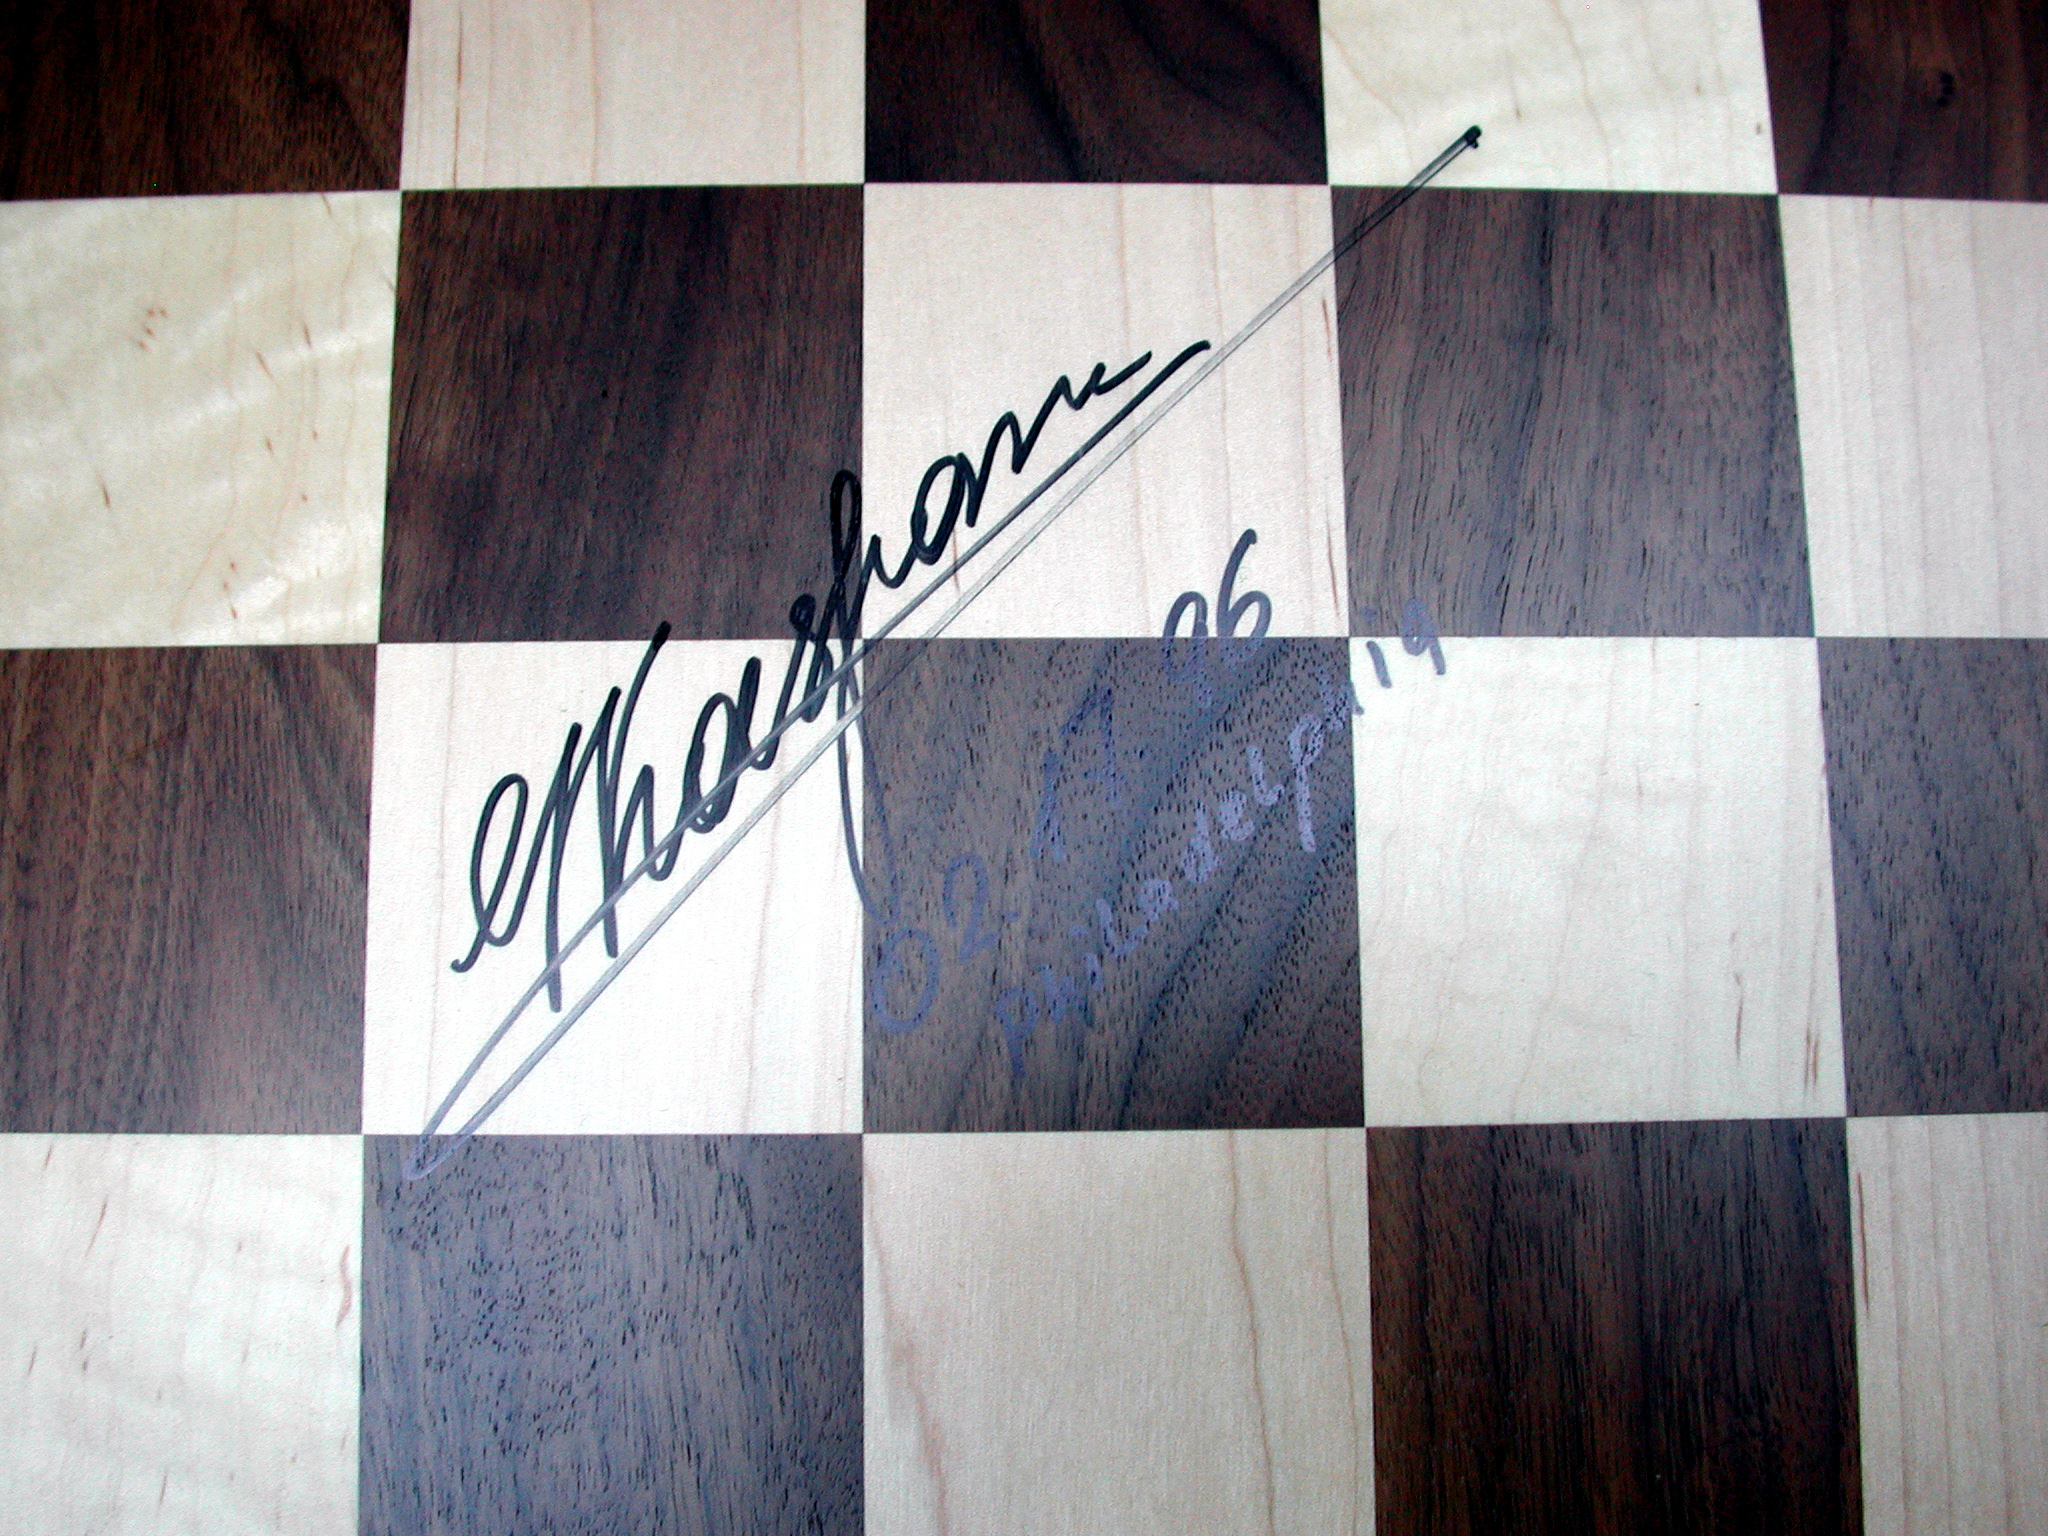 Chess board and pieces kasparov vs deep blue 1996 l2005 3 1 close up